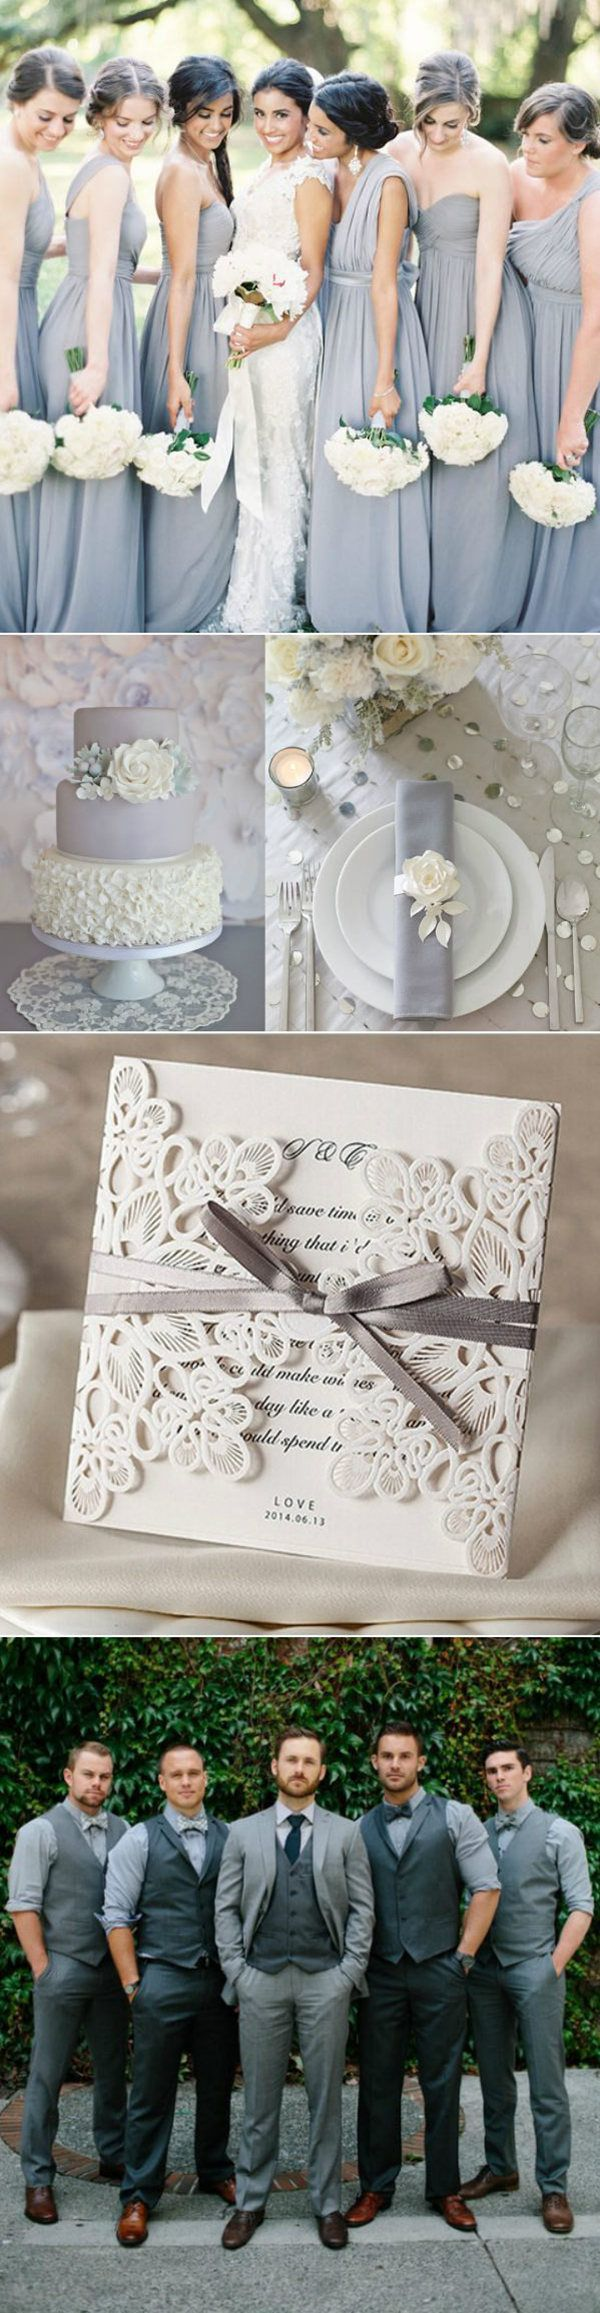 shabby chic grey wedding ideas with laser cut wedding invitations